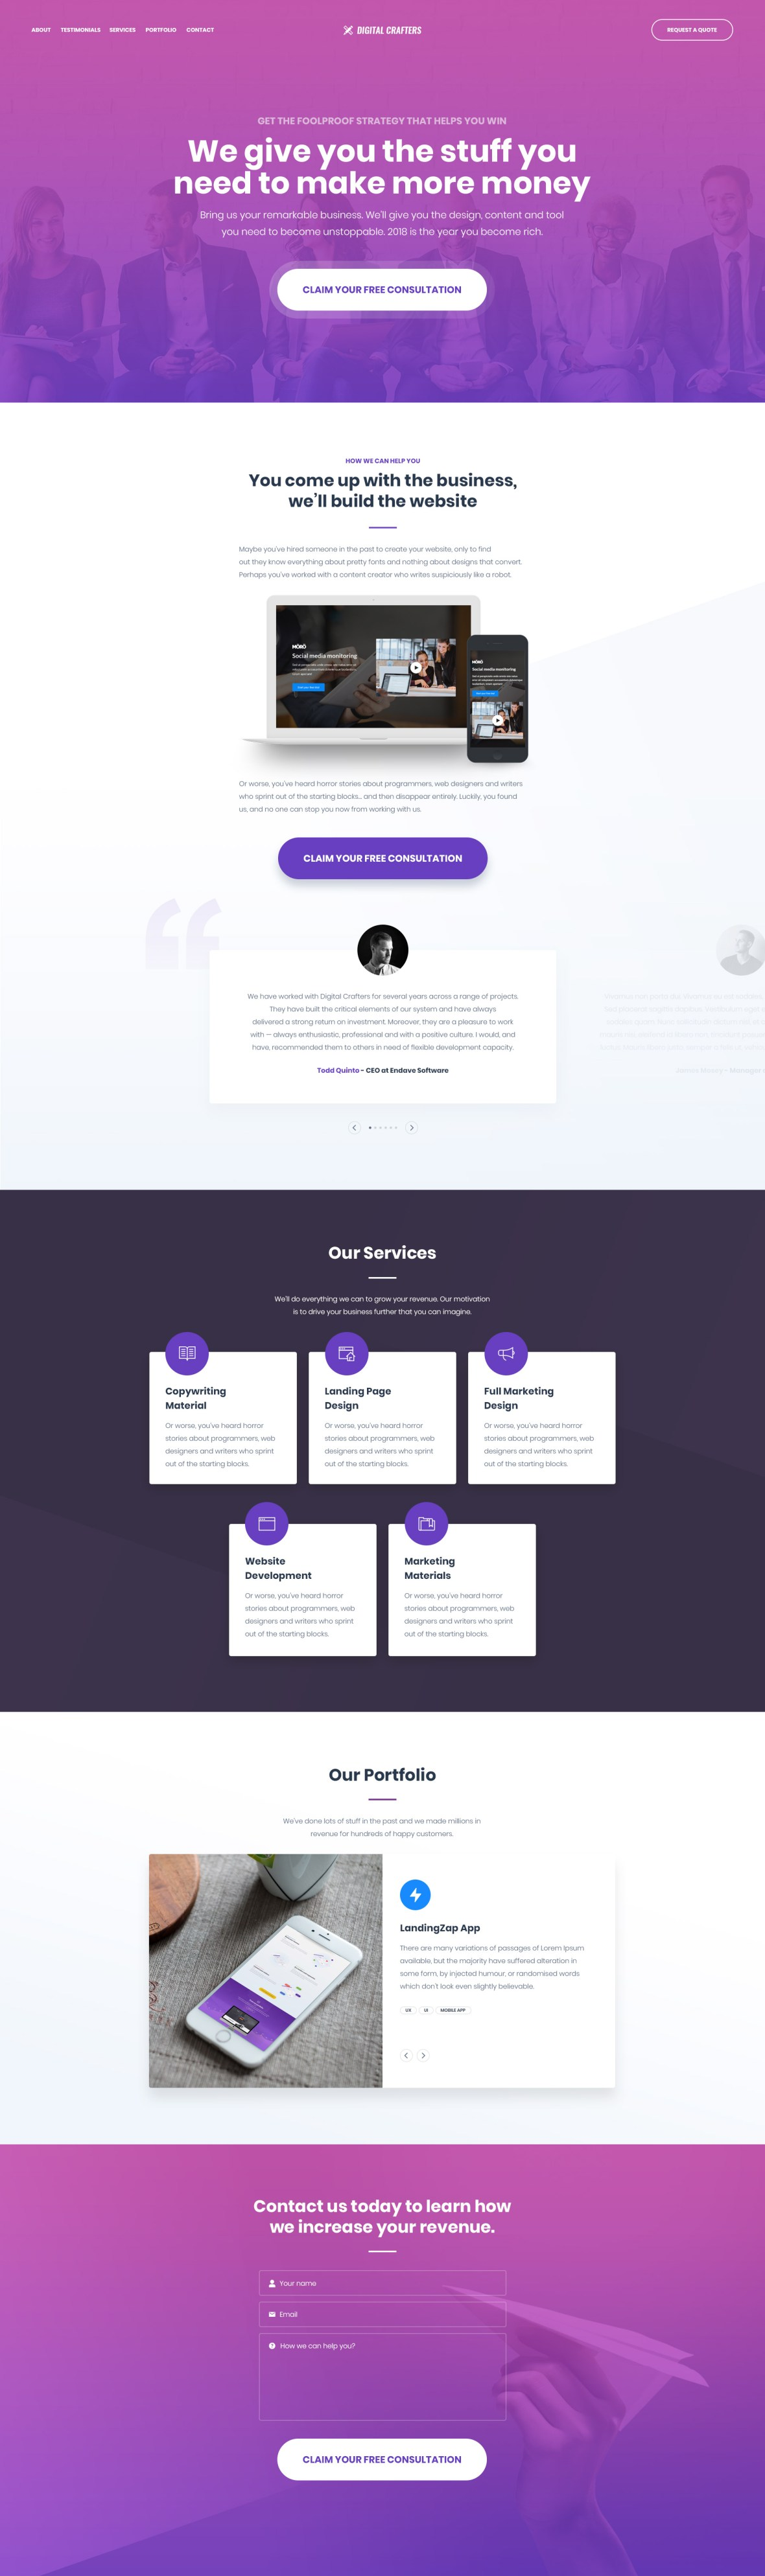 Digital Crafters - Free Landing Page PSD Template